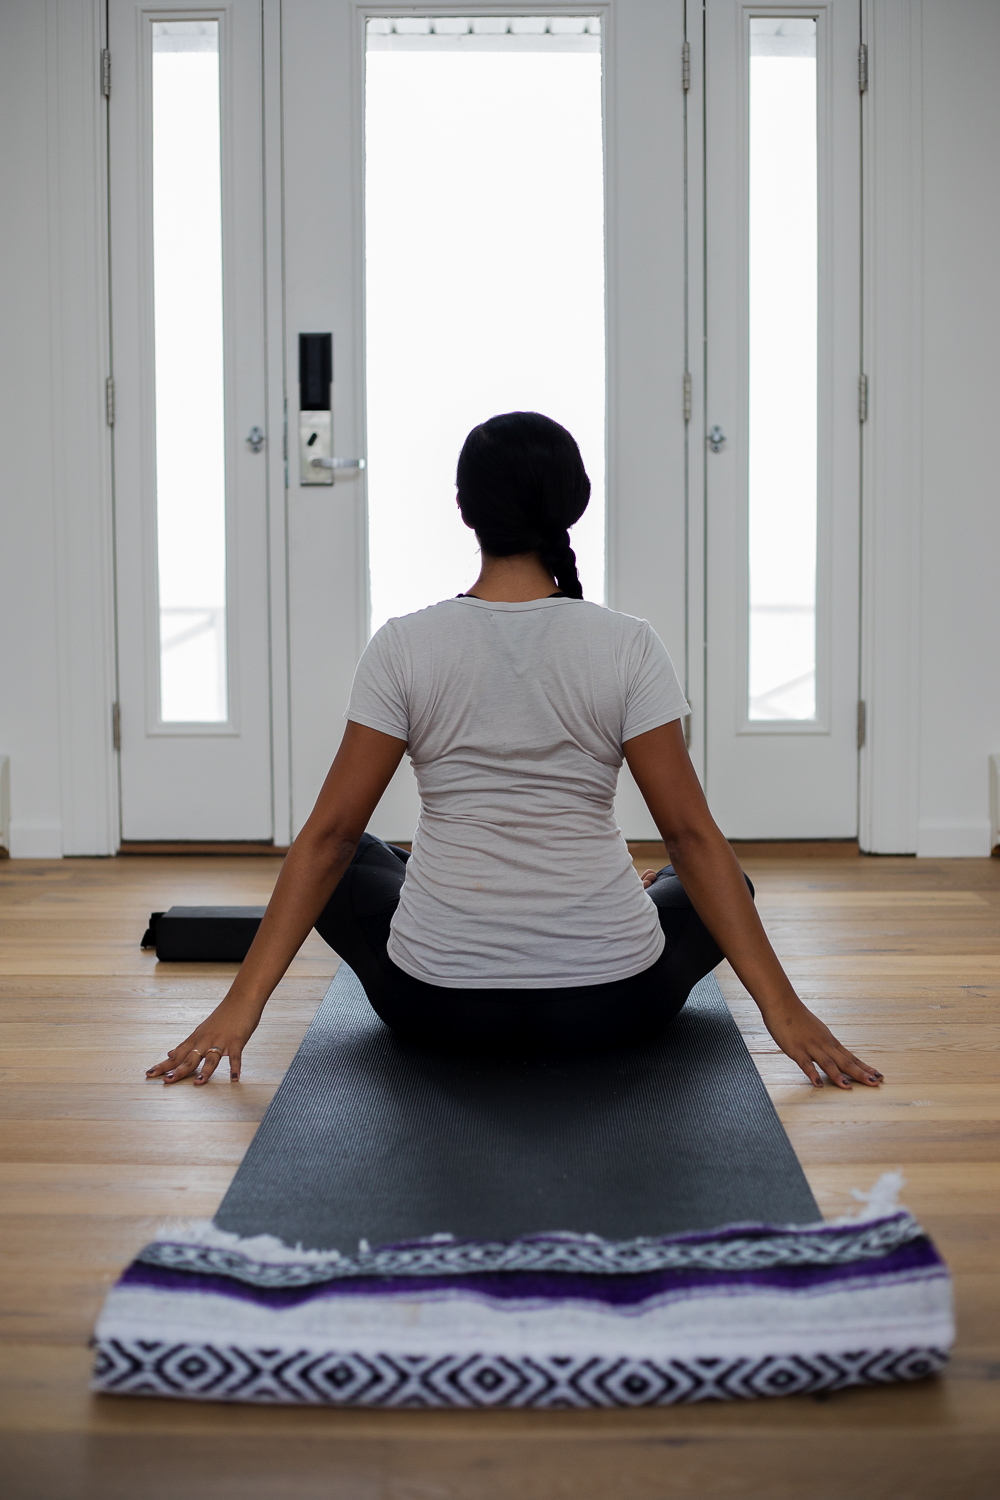 Yoga in Yoga and Meditation Room